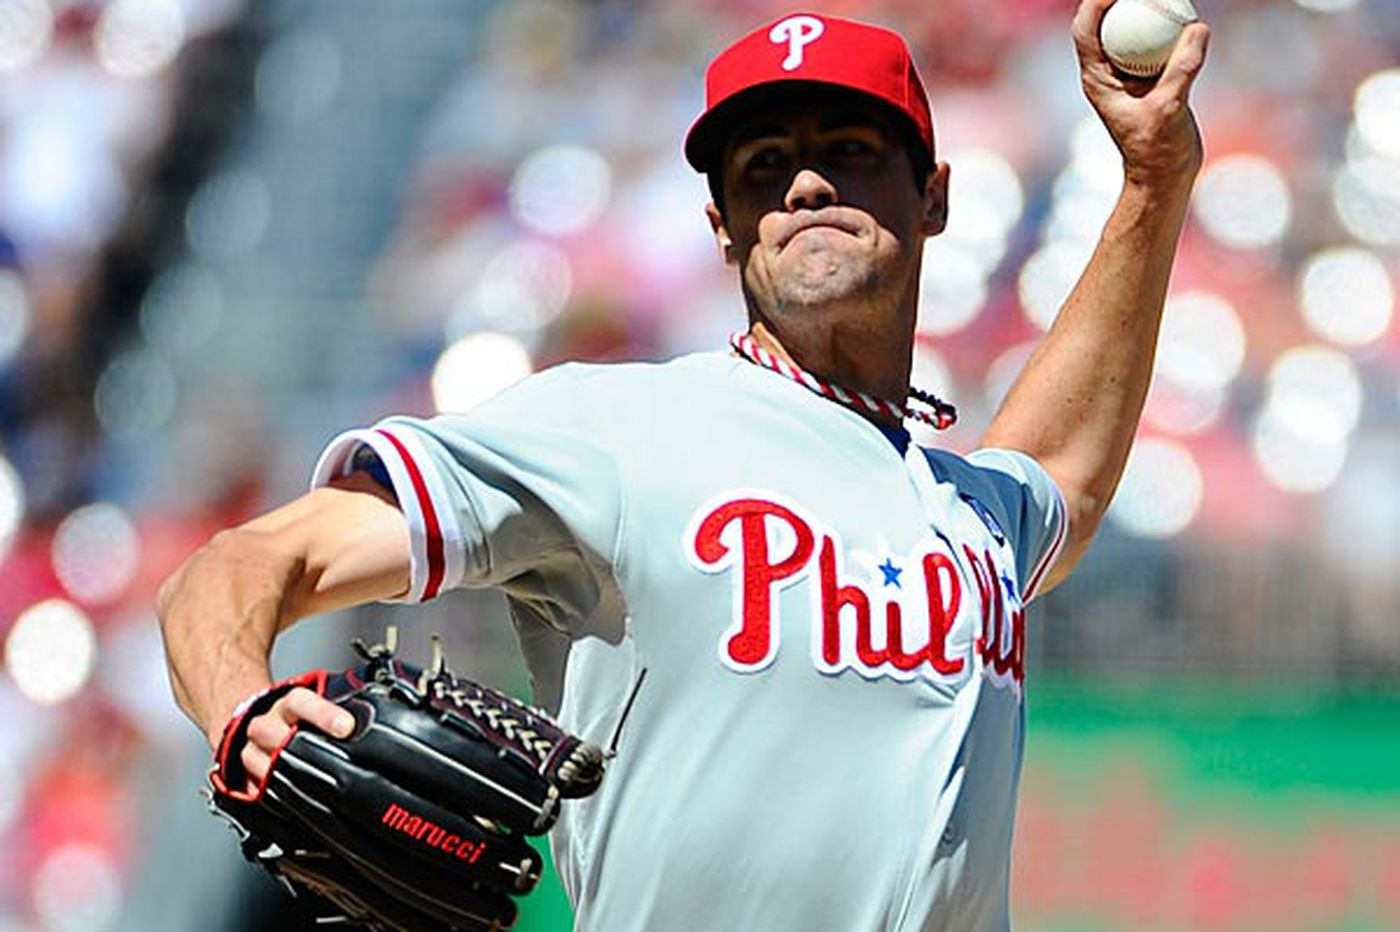 Padres said to be pursuing Hamels